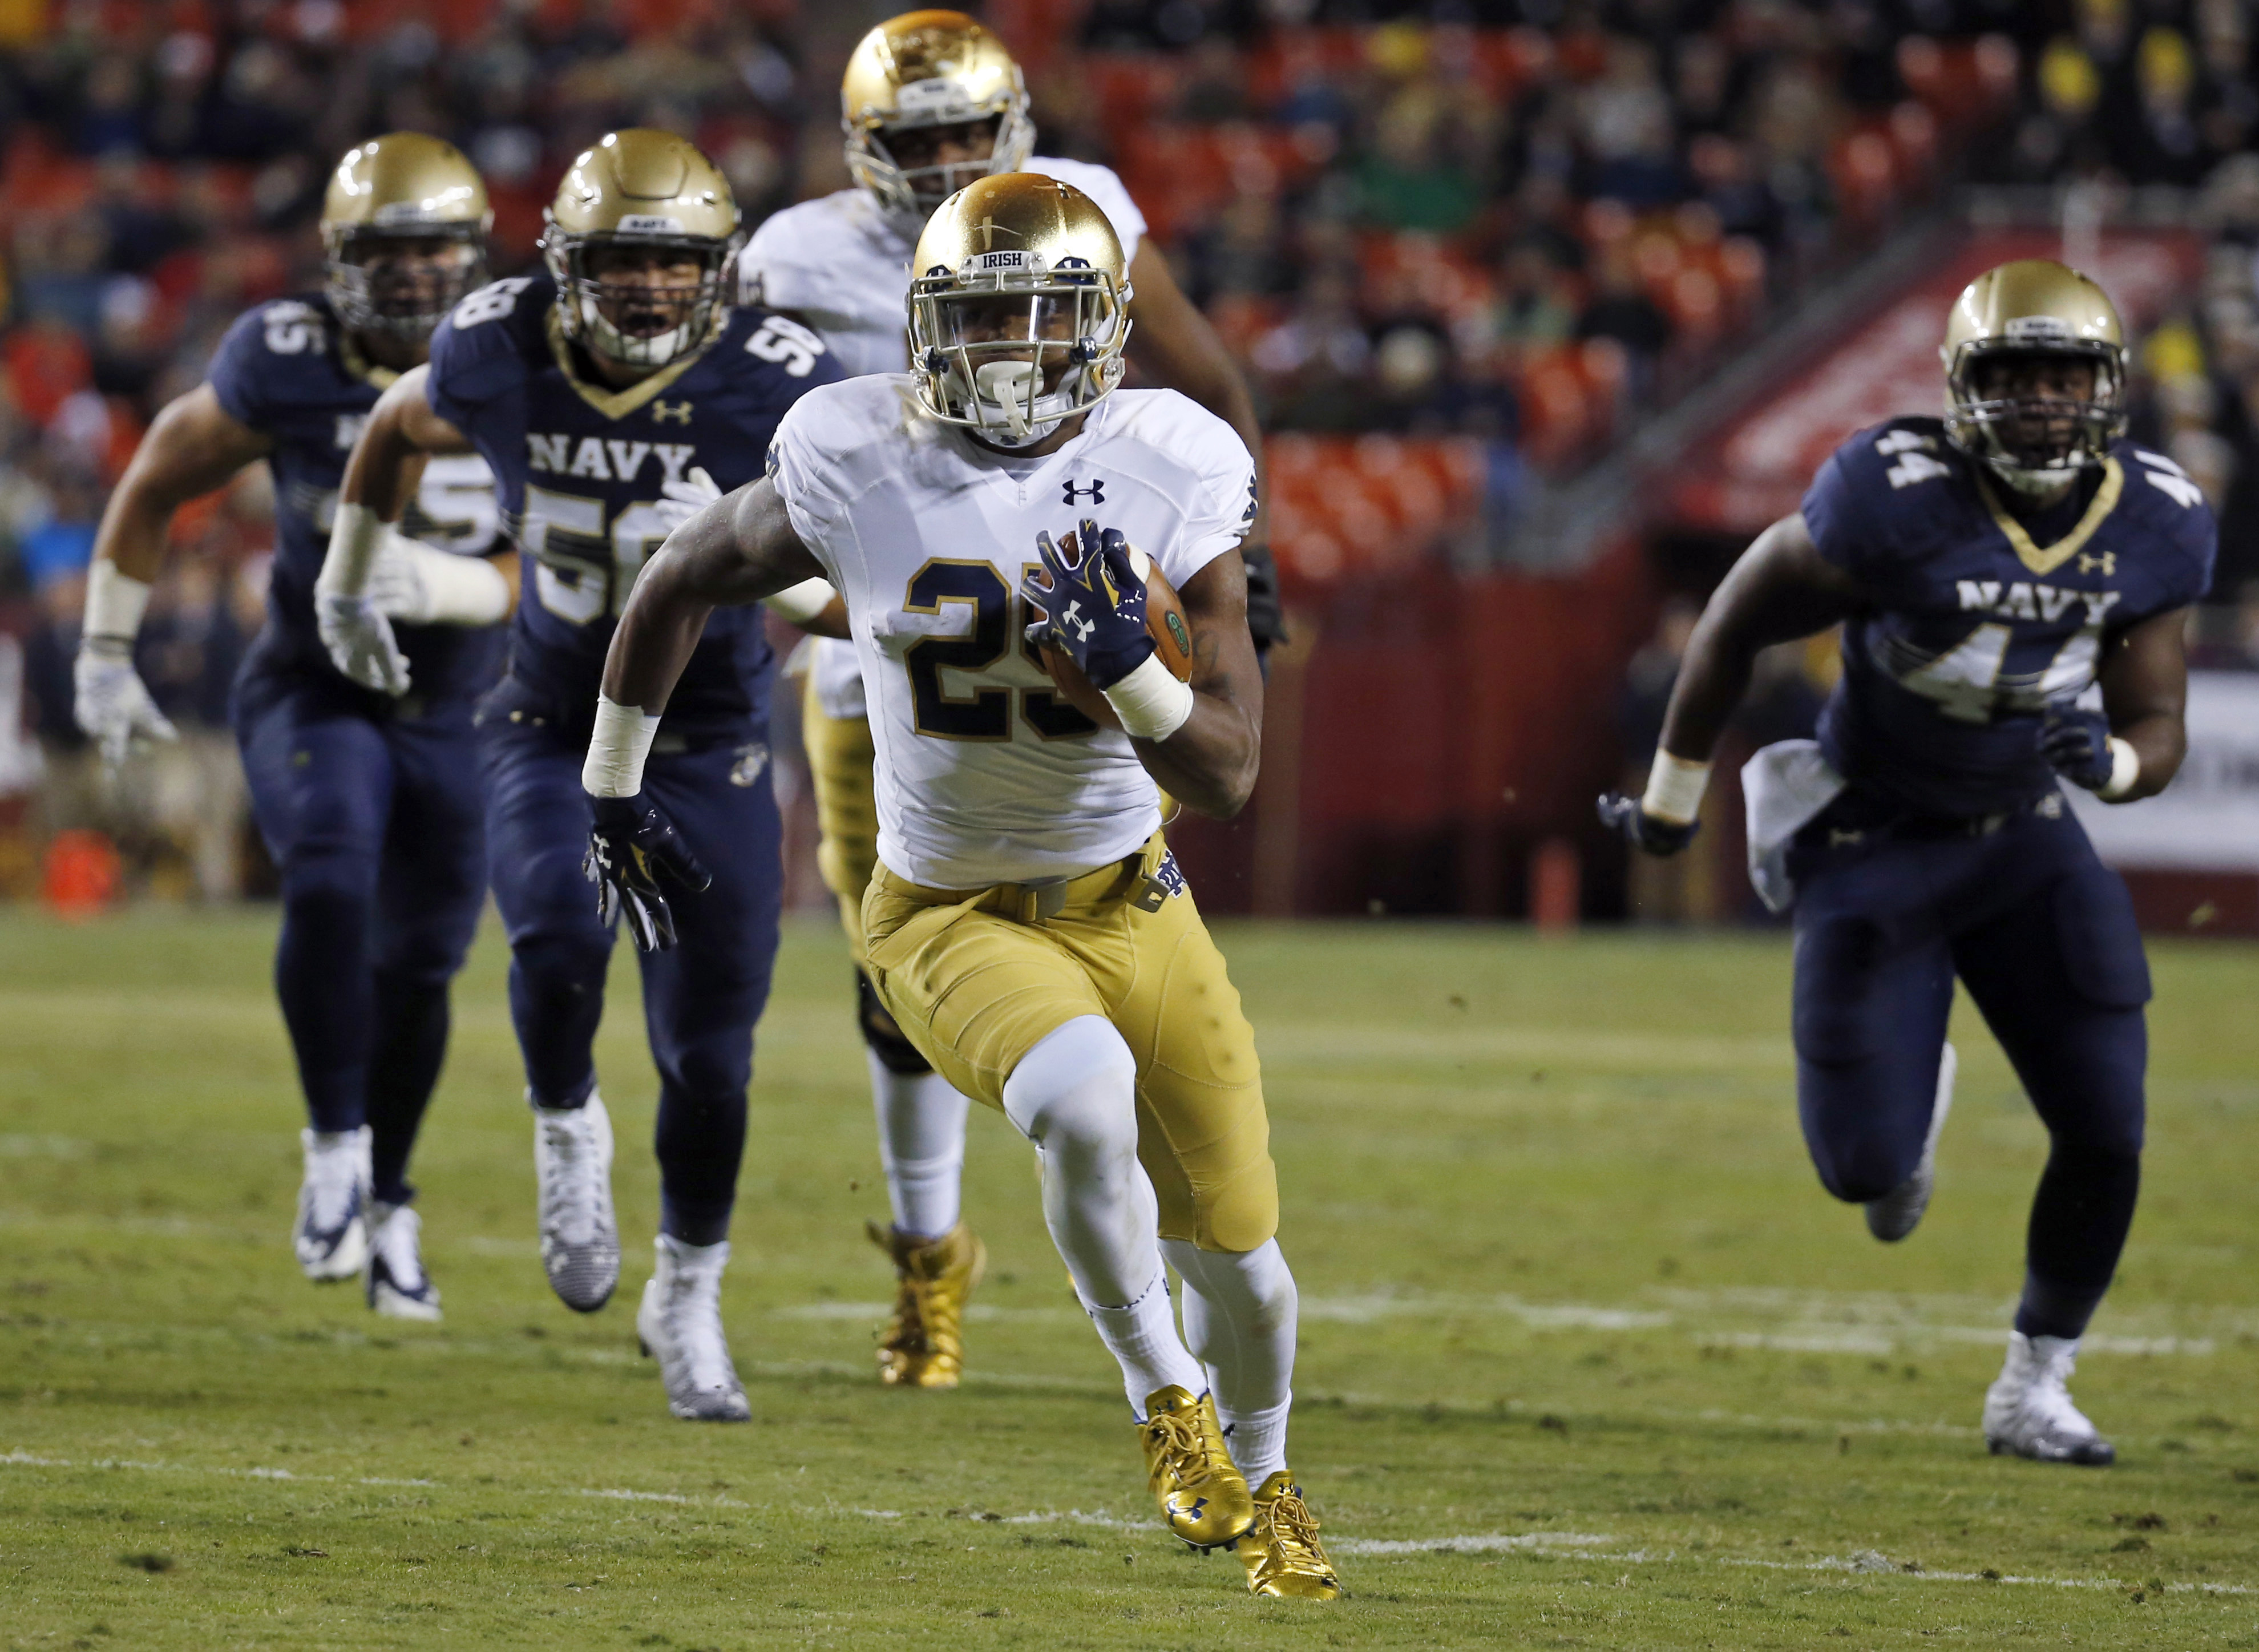 FILE - In this Nov. 1, 2014, file photo, Notre Dame running back Tarean Folston (25) runs with the ball as he is pursued by Navy linebackers Daniel Gonzales (58) and Obi Uzoma (44) during an NCAA college football game in Landover, Md. Folston tore the ACL